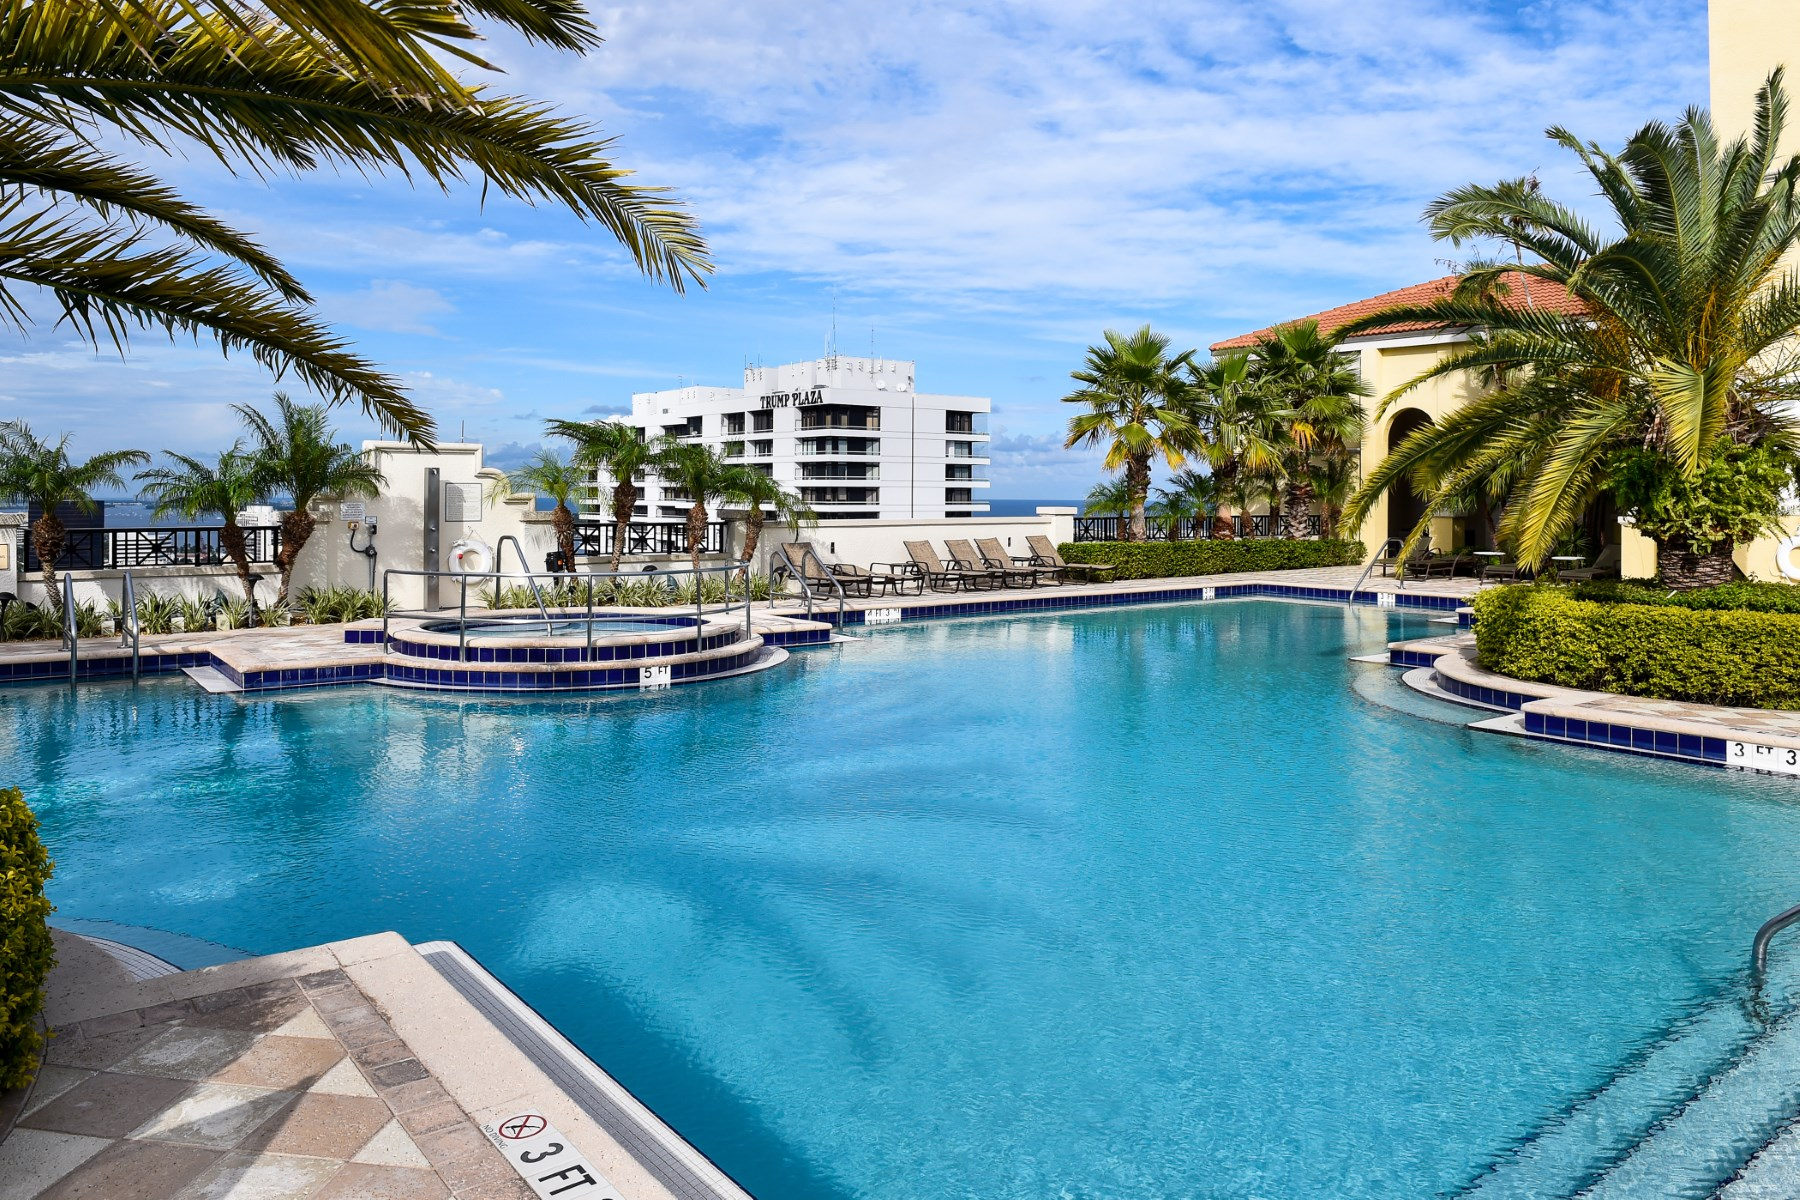 Condominium for Sale at Gorgeous Two City Plaza Condo 701 S Olive Ave Apt 1217 West Palm Beach, Florida 33401 United States